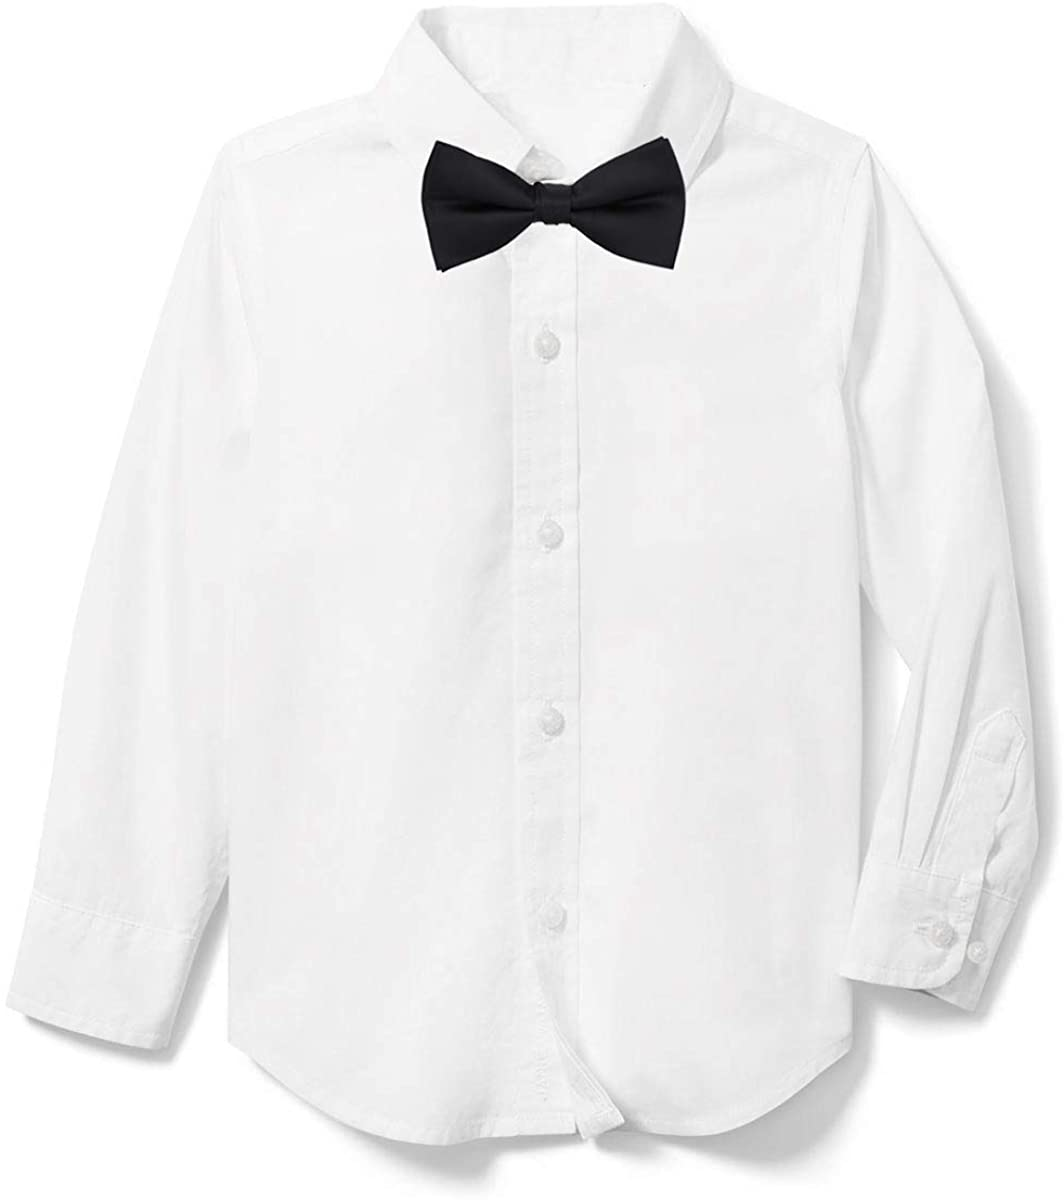 Rolanko Boys' Long Sleeve Dress Shirt, Boys White Tuxedo Button-Down Shirts with Bow Tie